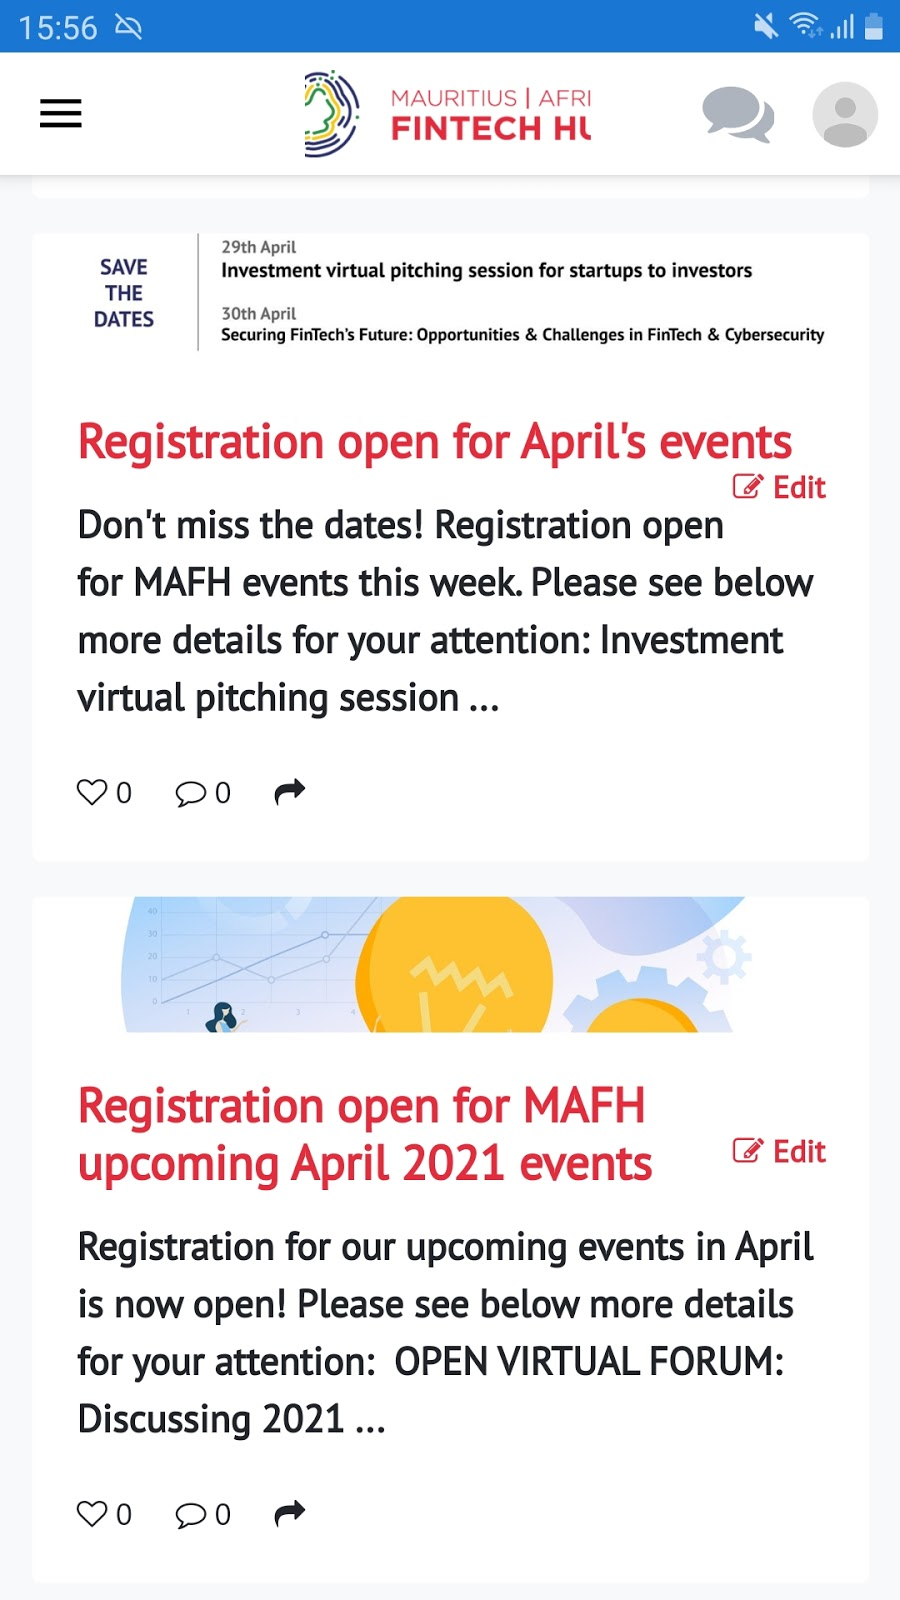 Fintech Updates their members about upcoming events